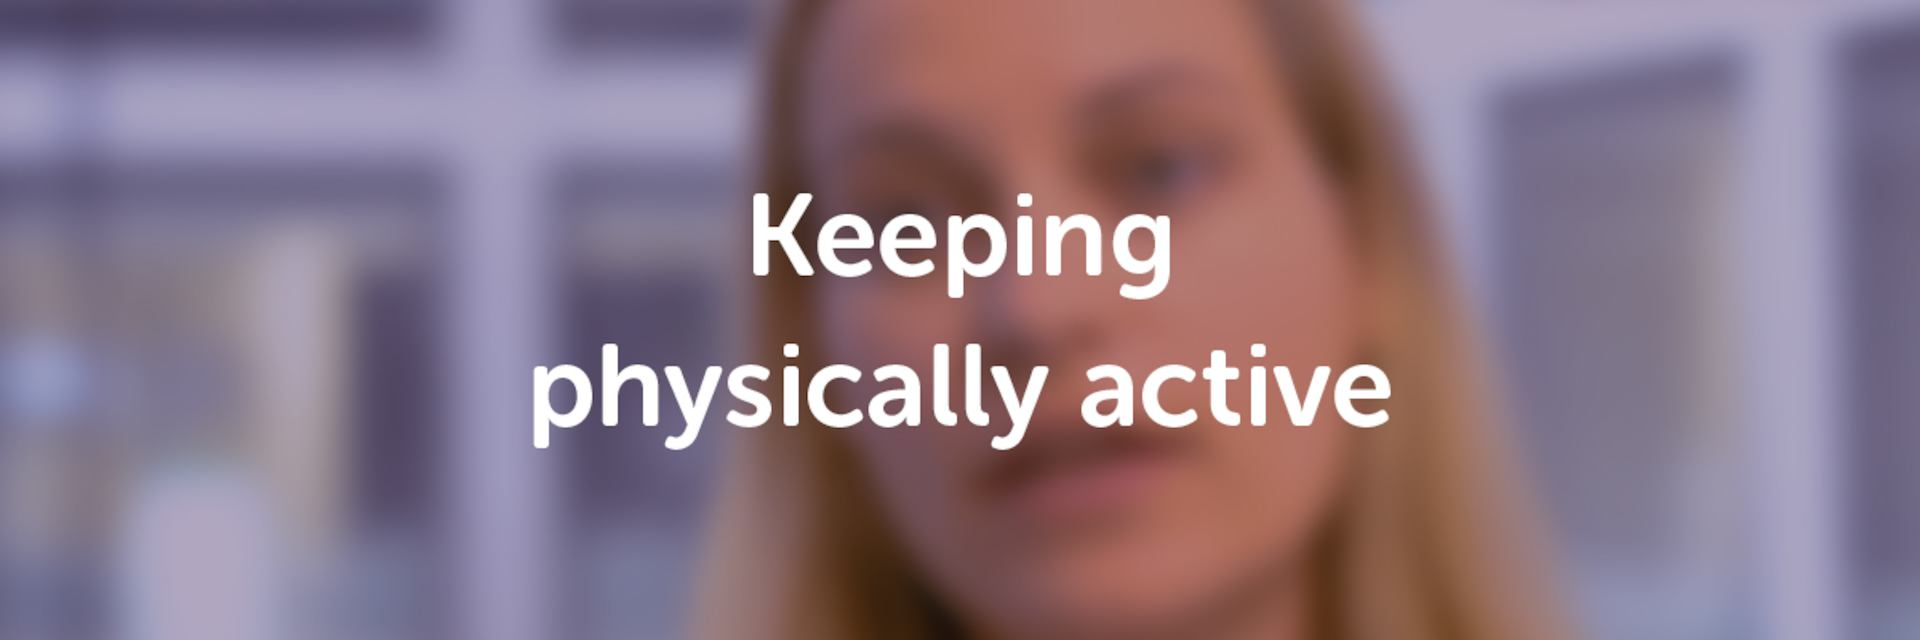 Keeping physically active